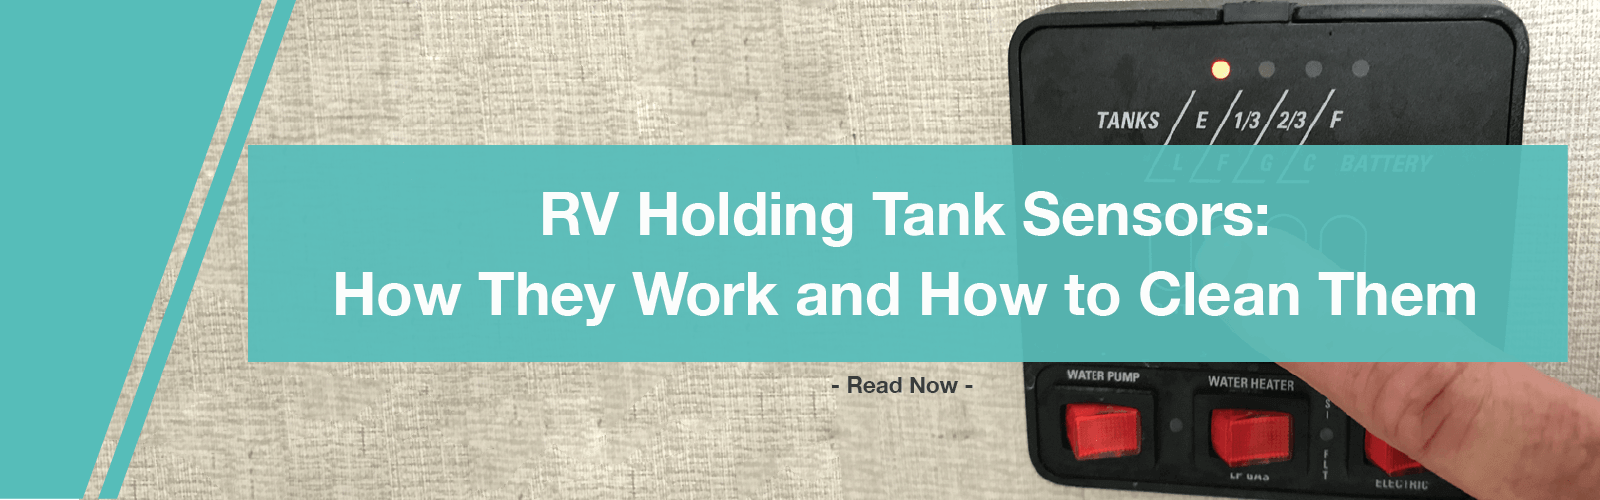 RV holding tank sensors, how they work and how to clean them. A Unique Camping + Marine Guide